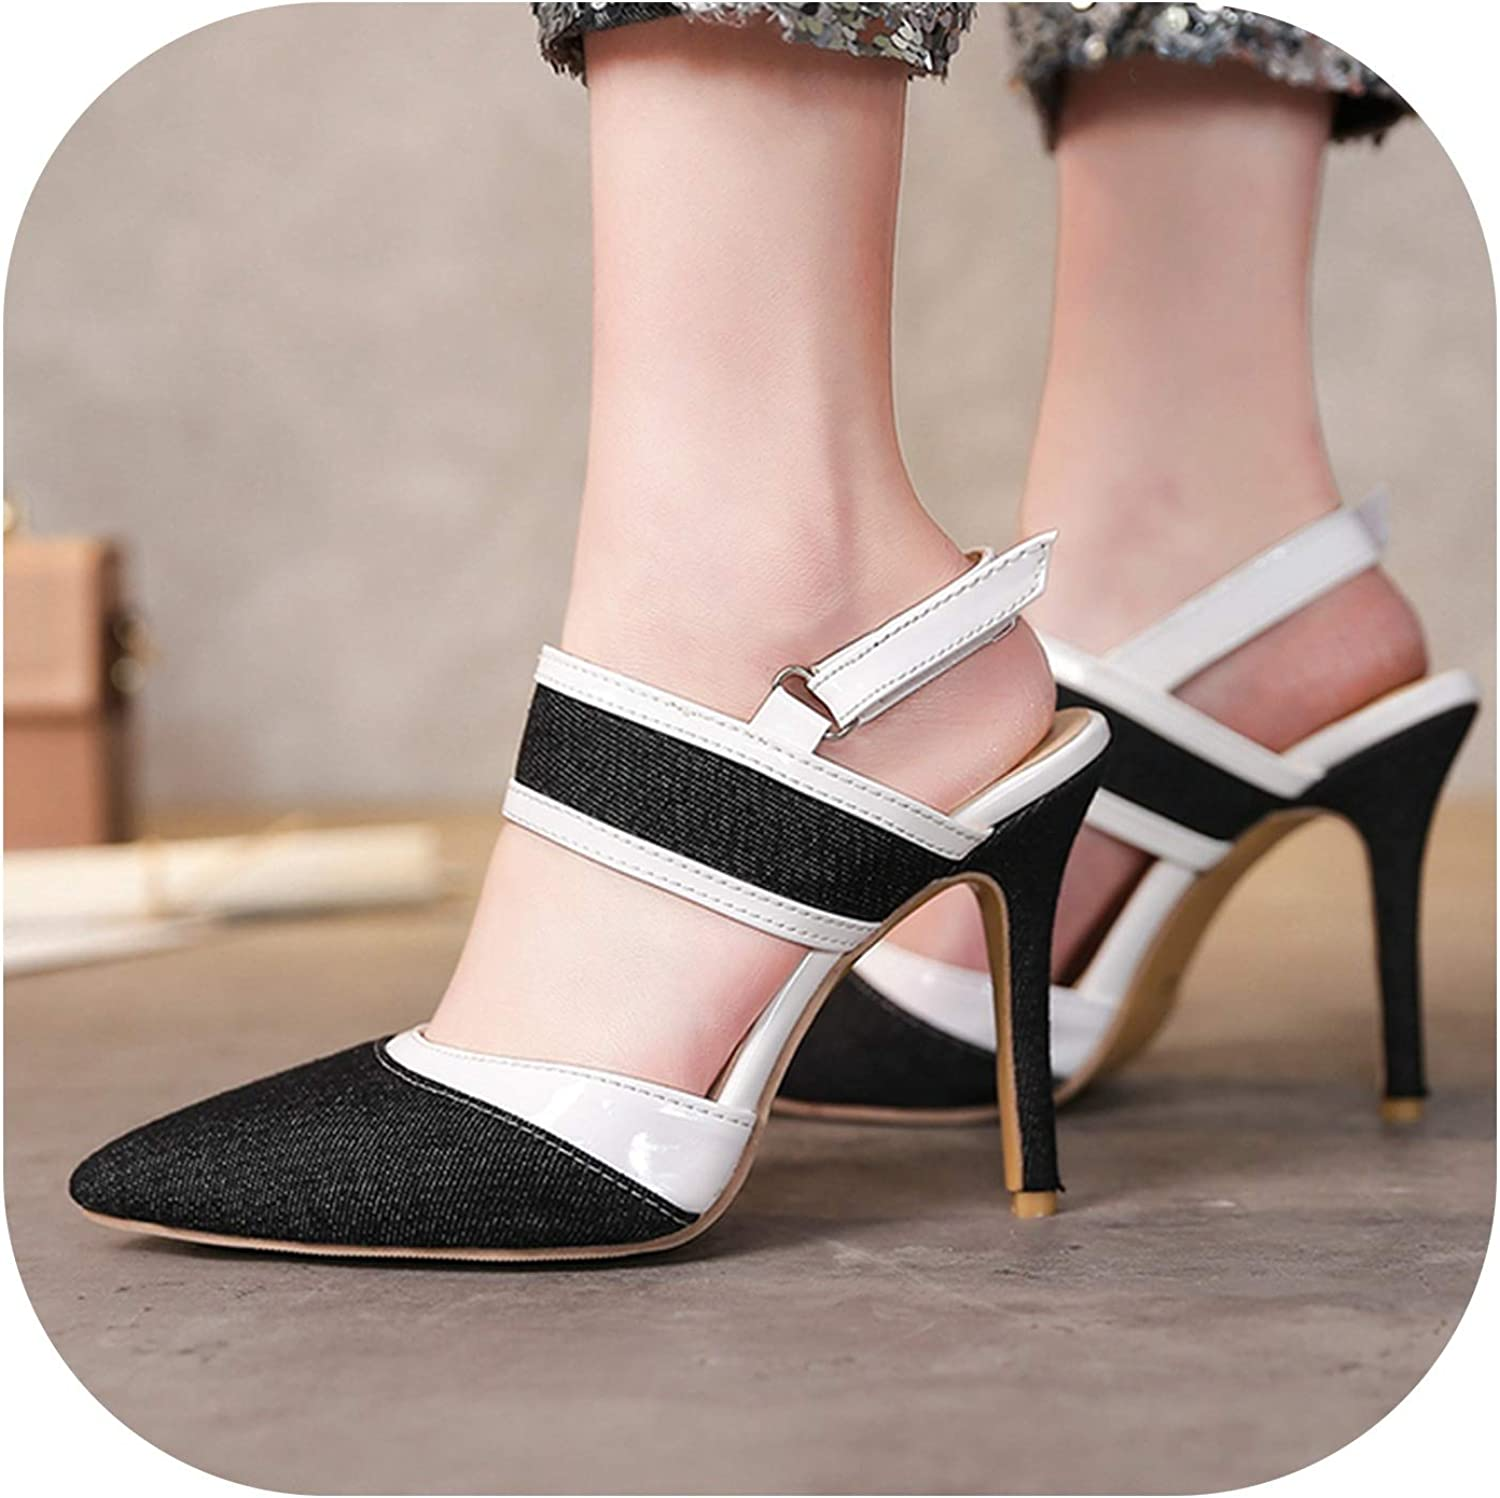 2019 Fashion Denim Sandals Women Sexy Thin High Heels Buckle Pointed Toe Party shoes Female Plus Size 34-43